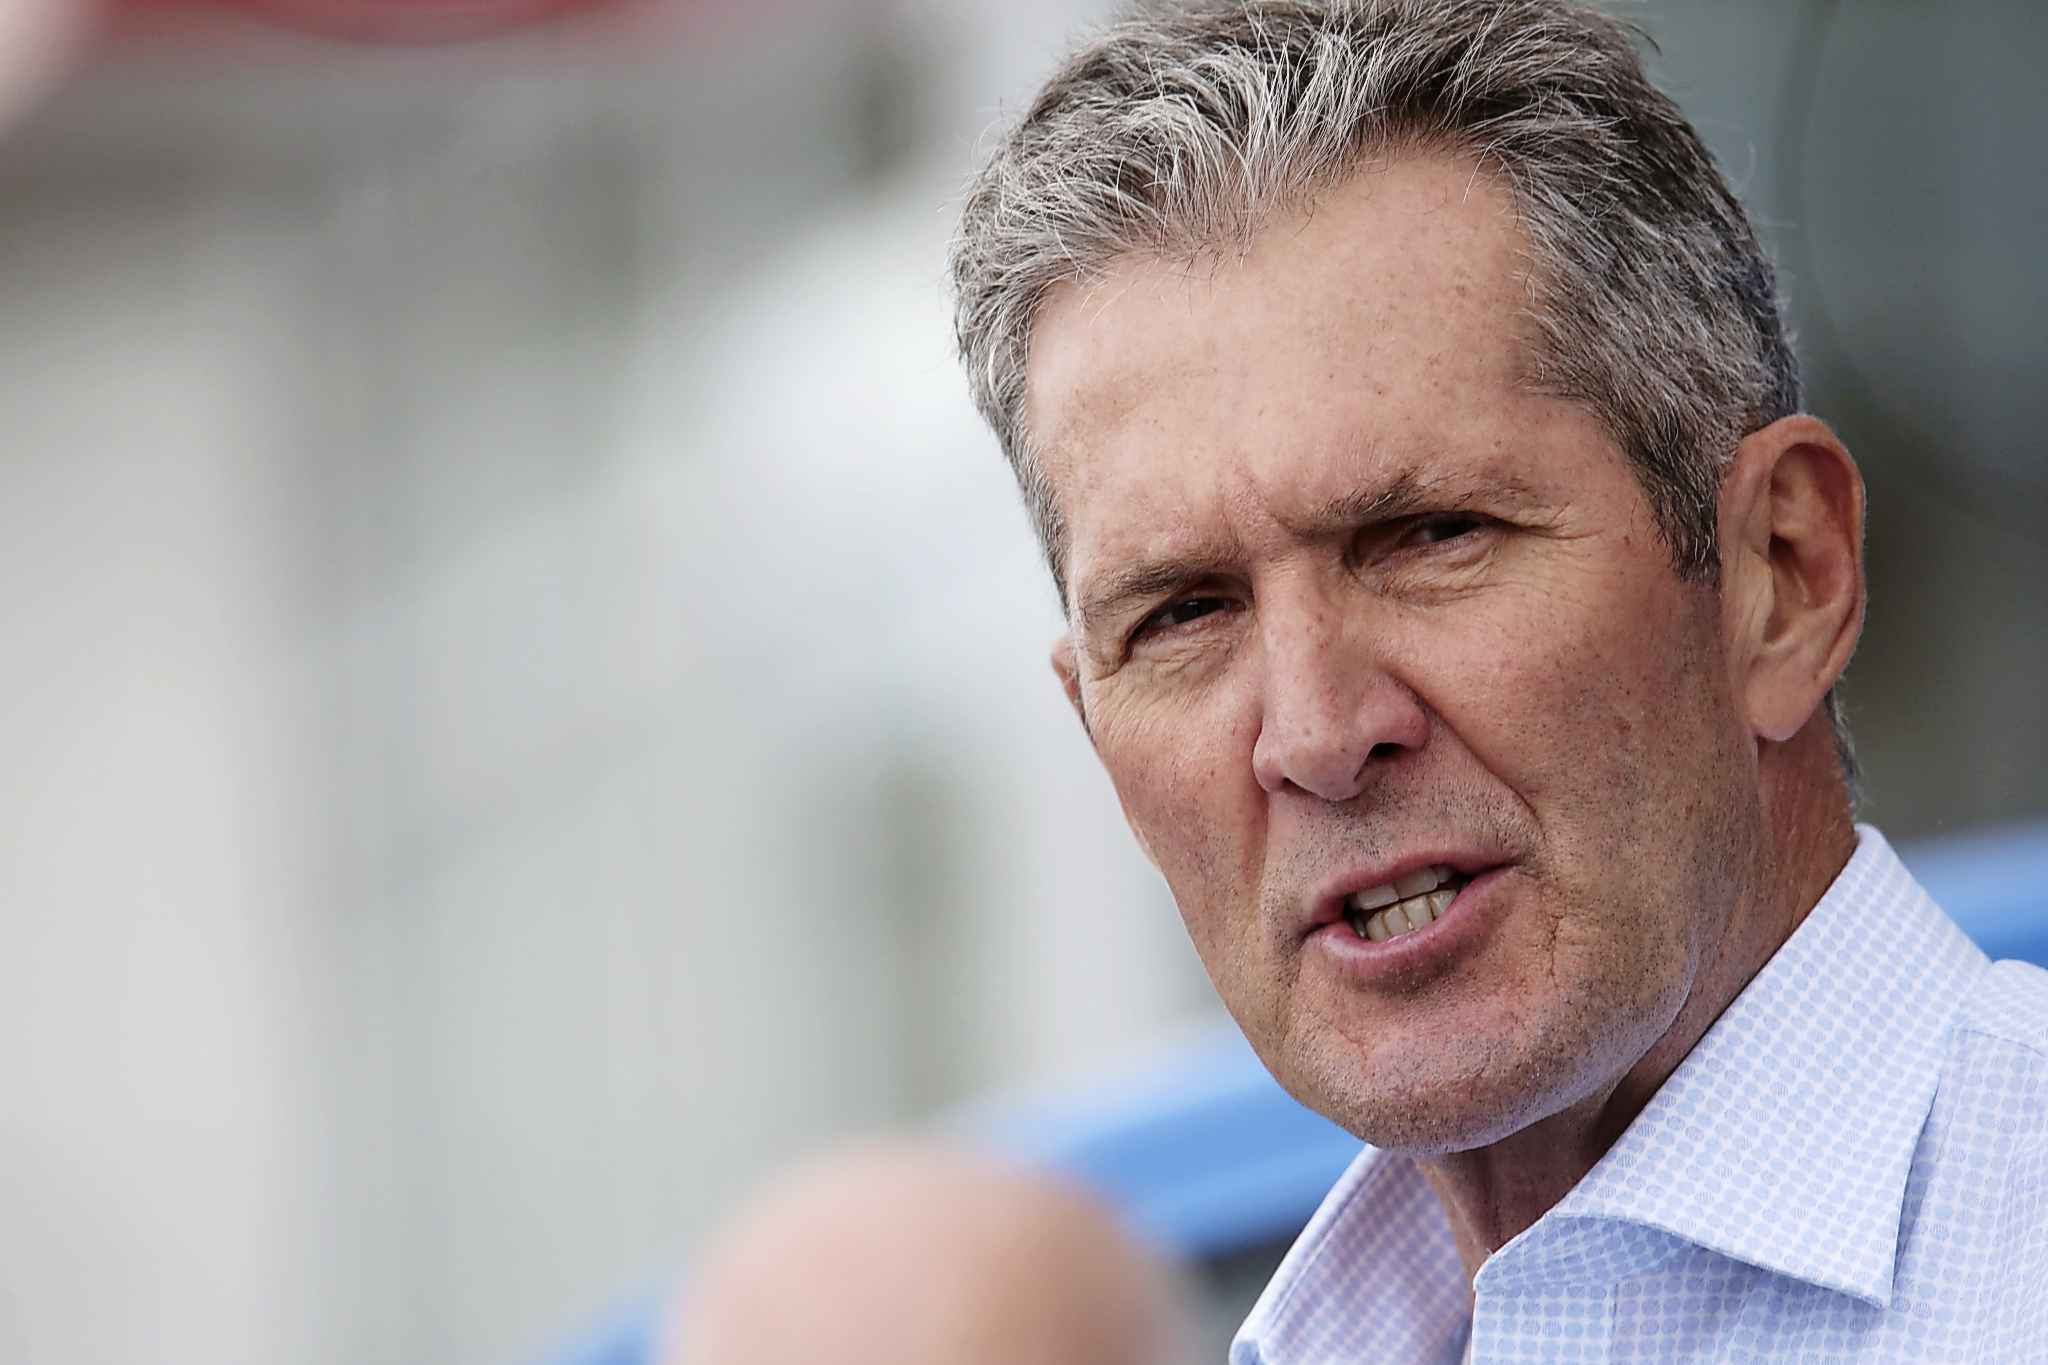 PC leader Brian Pallister speaks in Brandon on Tuesday. (Matt Goerzen/The Brandon Sun)